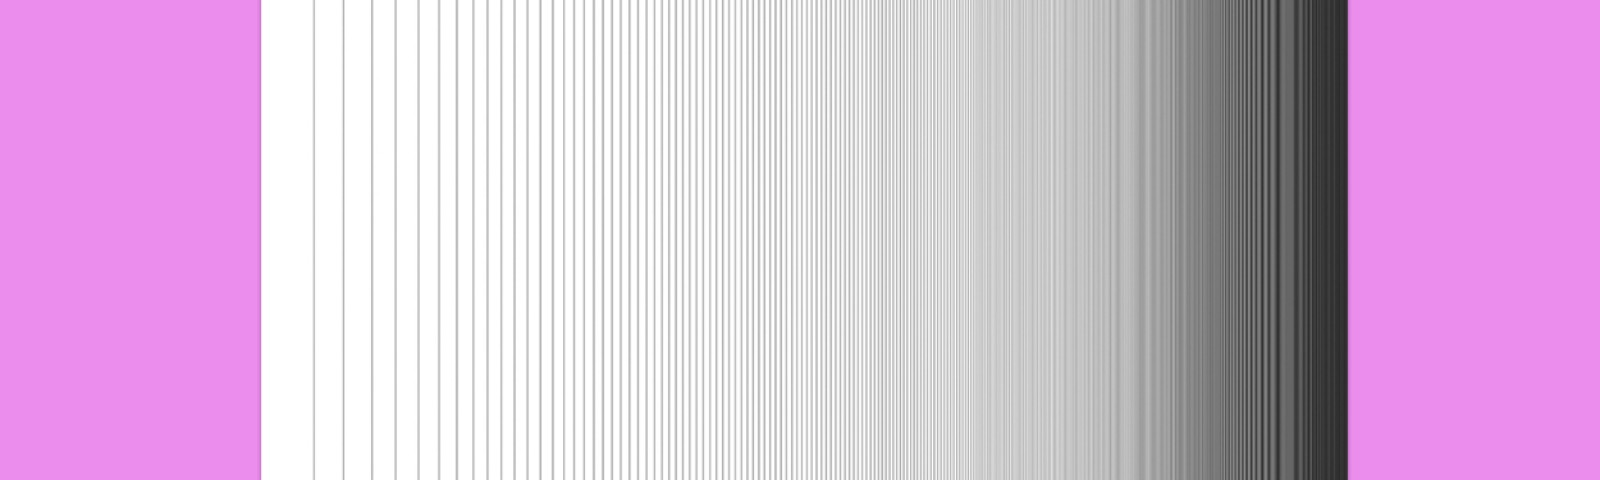 Thin vertical lines that form a gradient from white to gray to black.